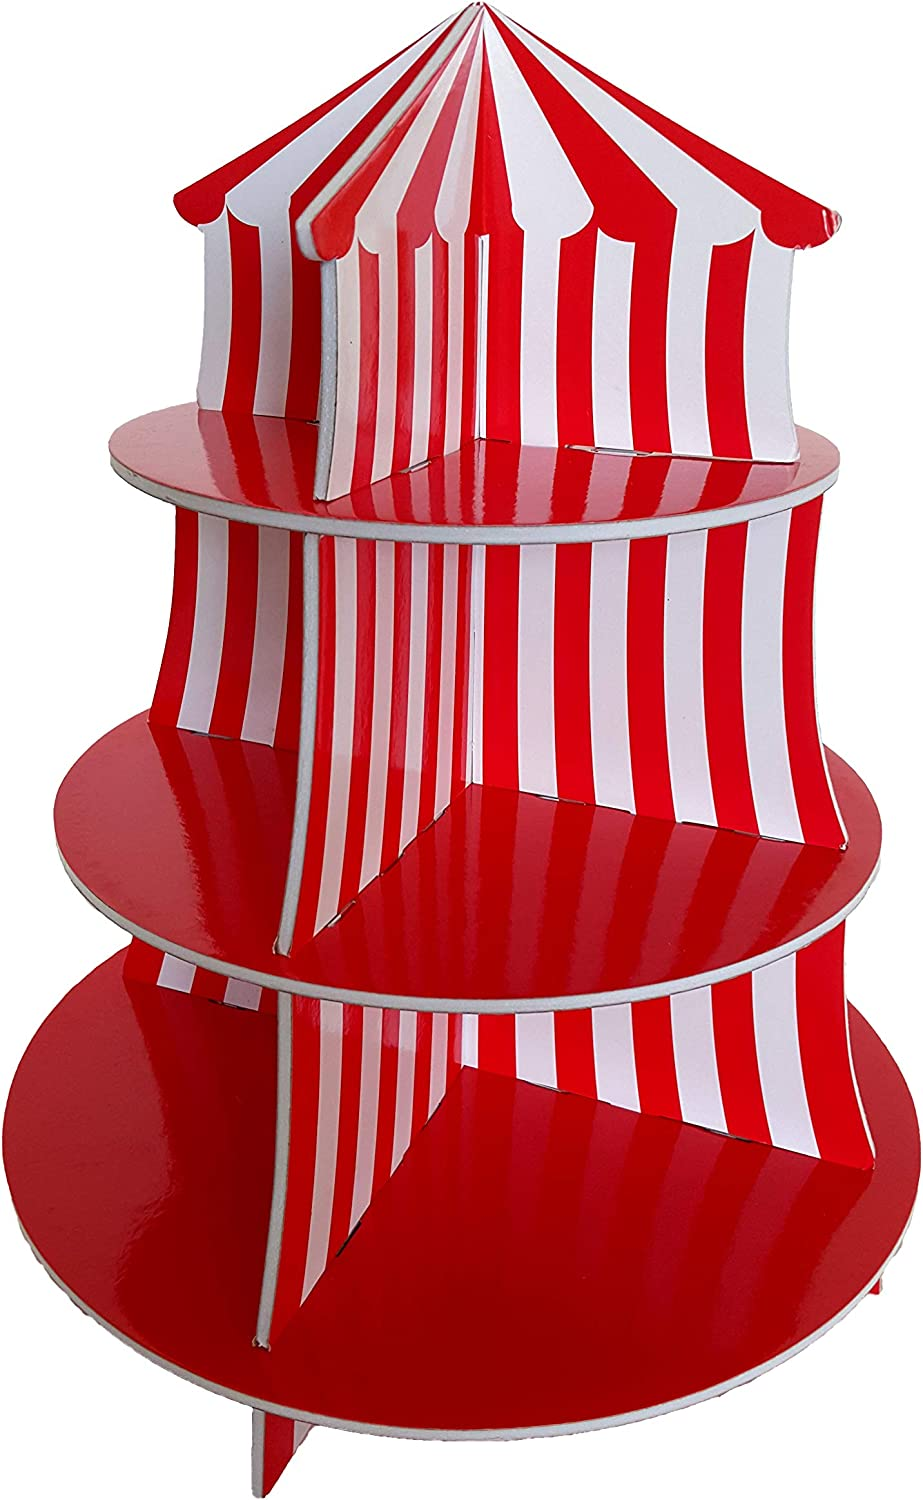 Big Top Circus Carnival 3 Tier Cupcake Holder Centerpiece Birthday Decorations - By Playscene (1 pc)